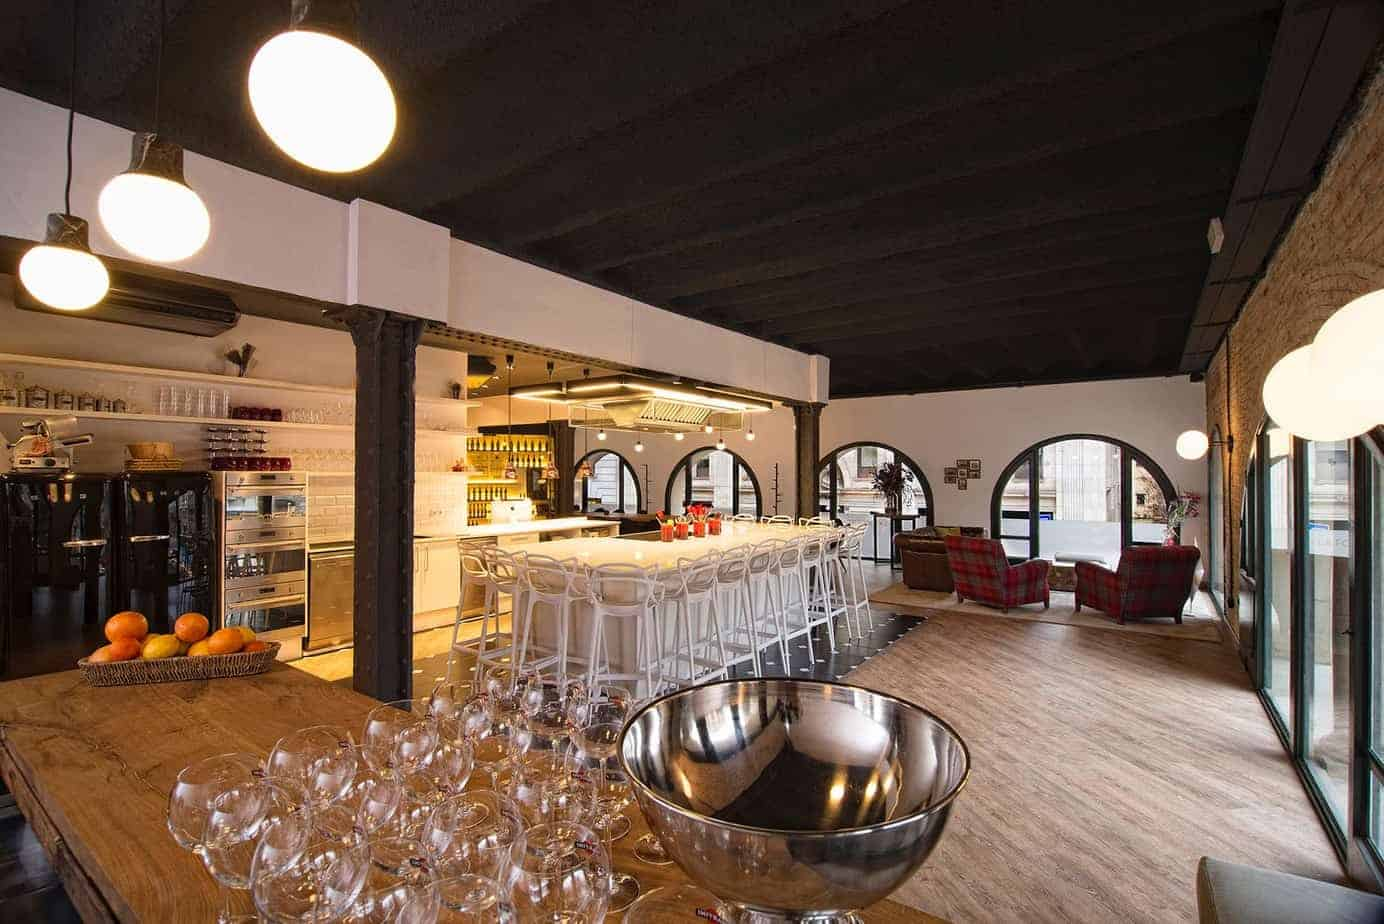 Versatile Group Dining Venue in Barcelona with Open Kitchen